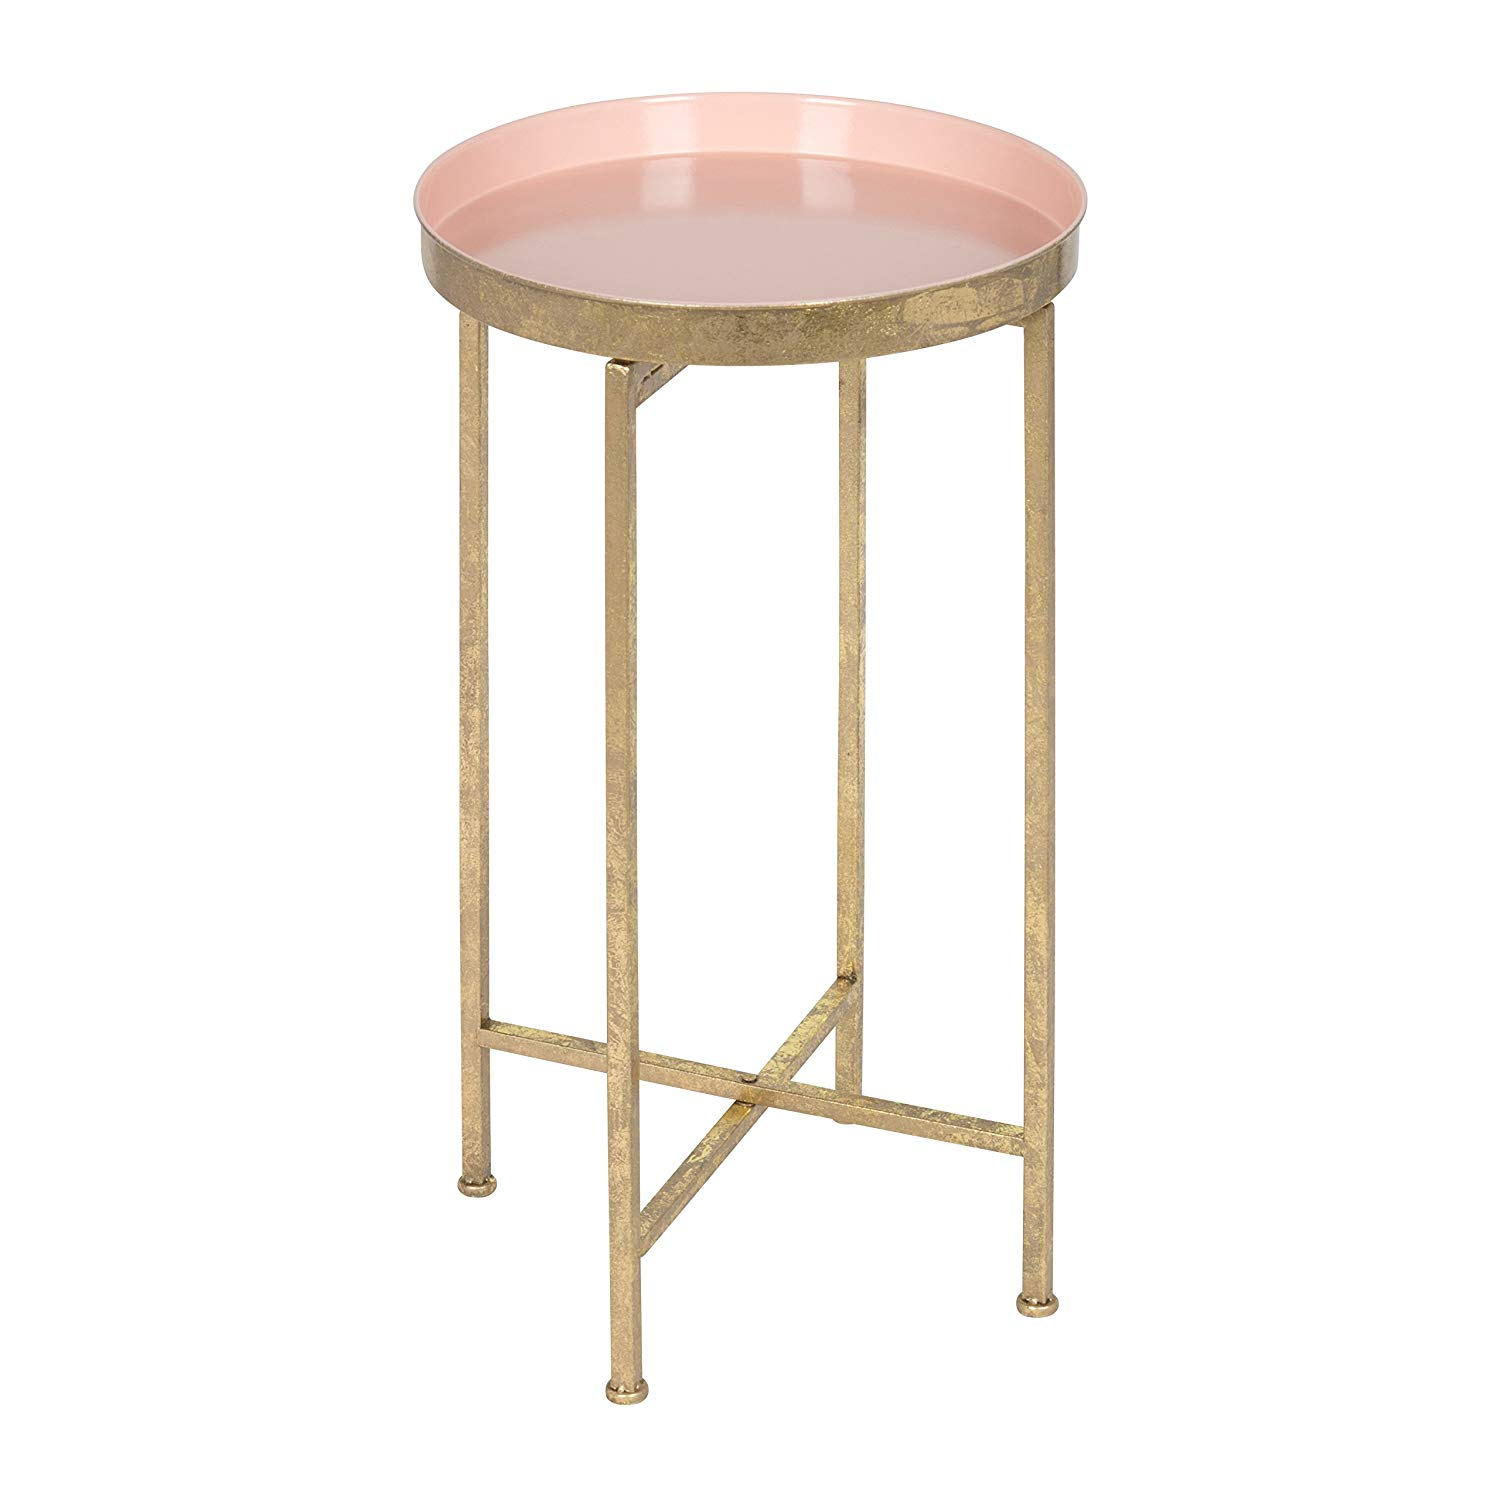 kate and laurel celia round metal foldable tray accent table wood pink gold home kitchen little coffee drum stool top monarch specialties set weber grill side computer furniture